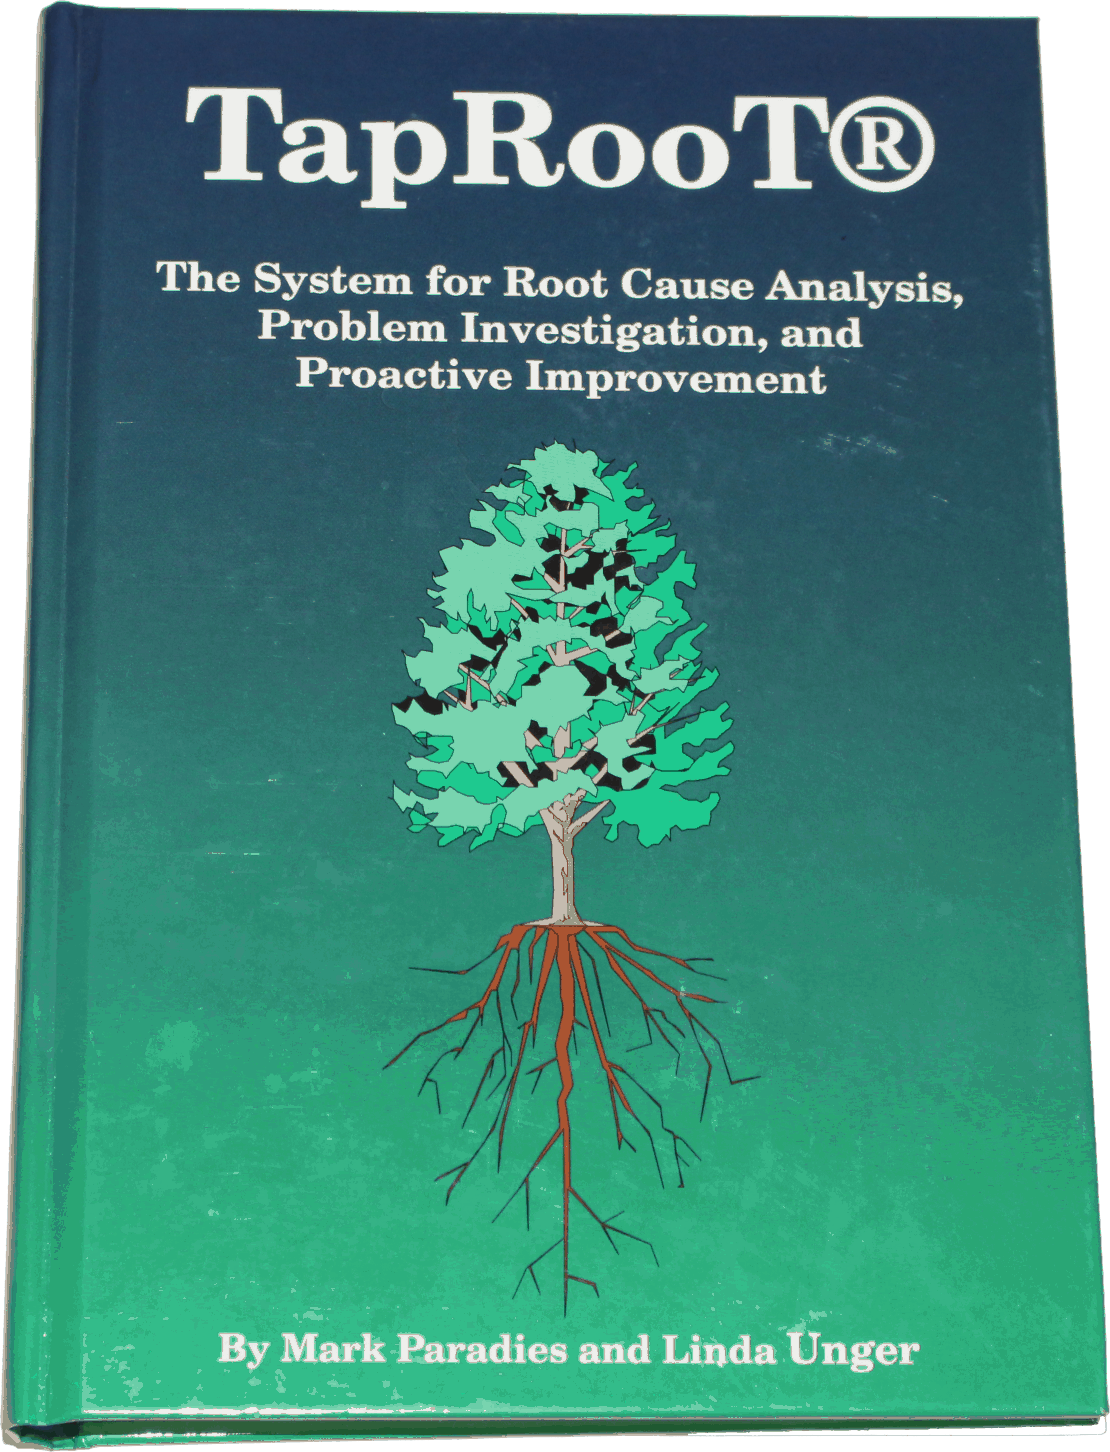 TapRooT® ® Gren Book